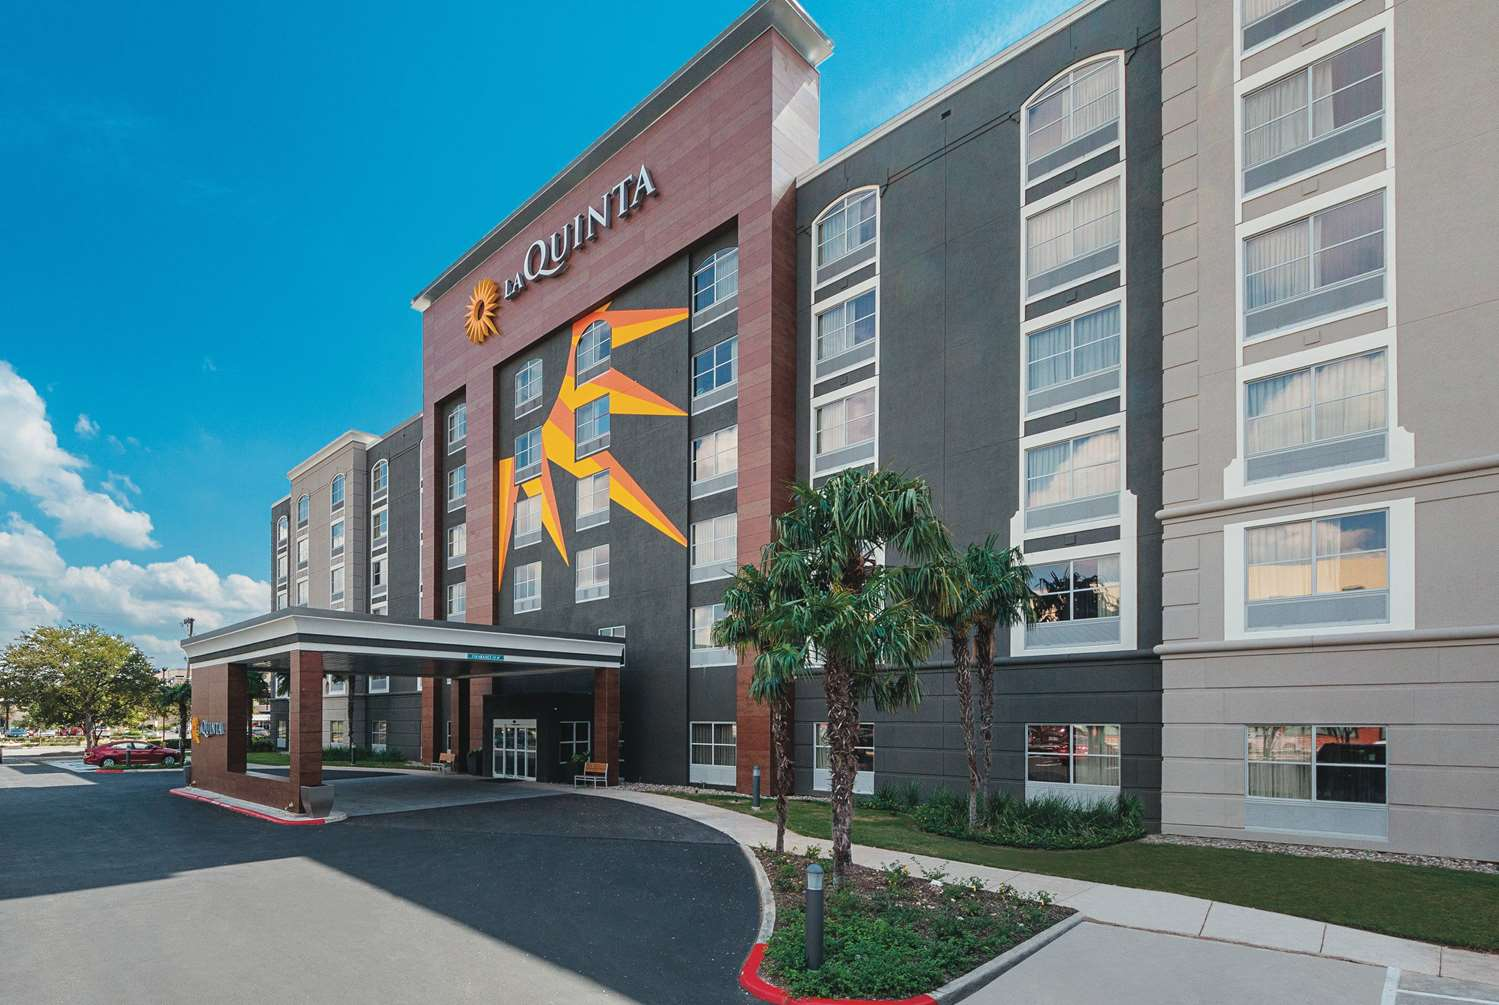 La Quinta Inn & Suites Downtown San Antonio